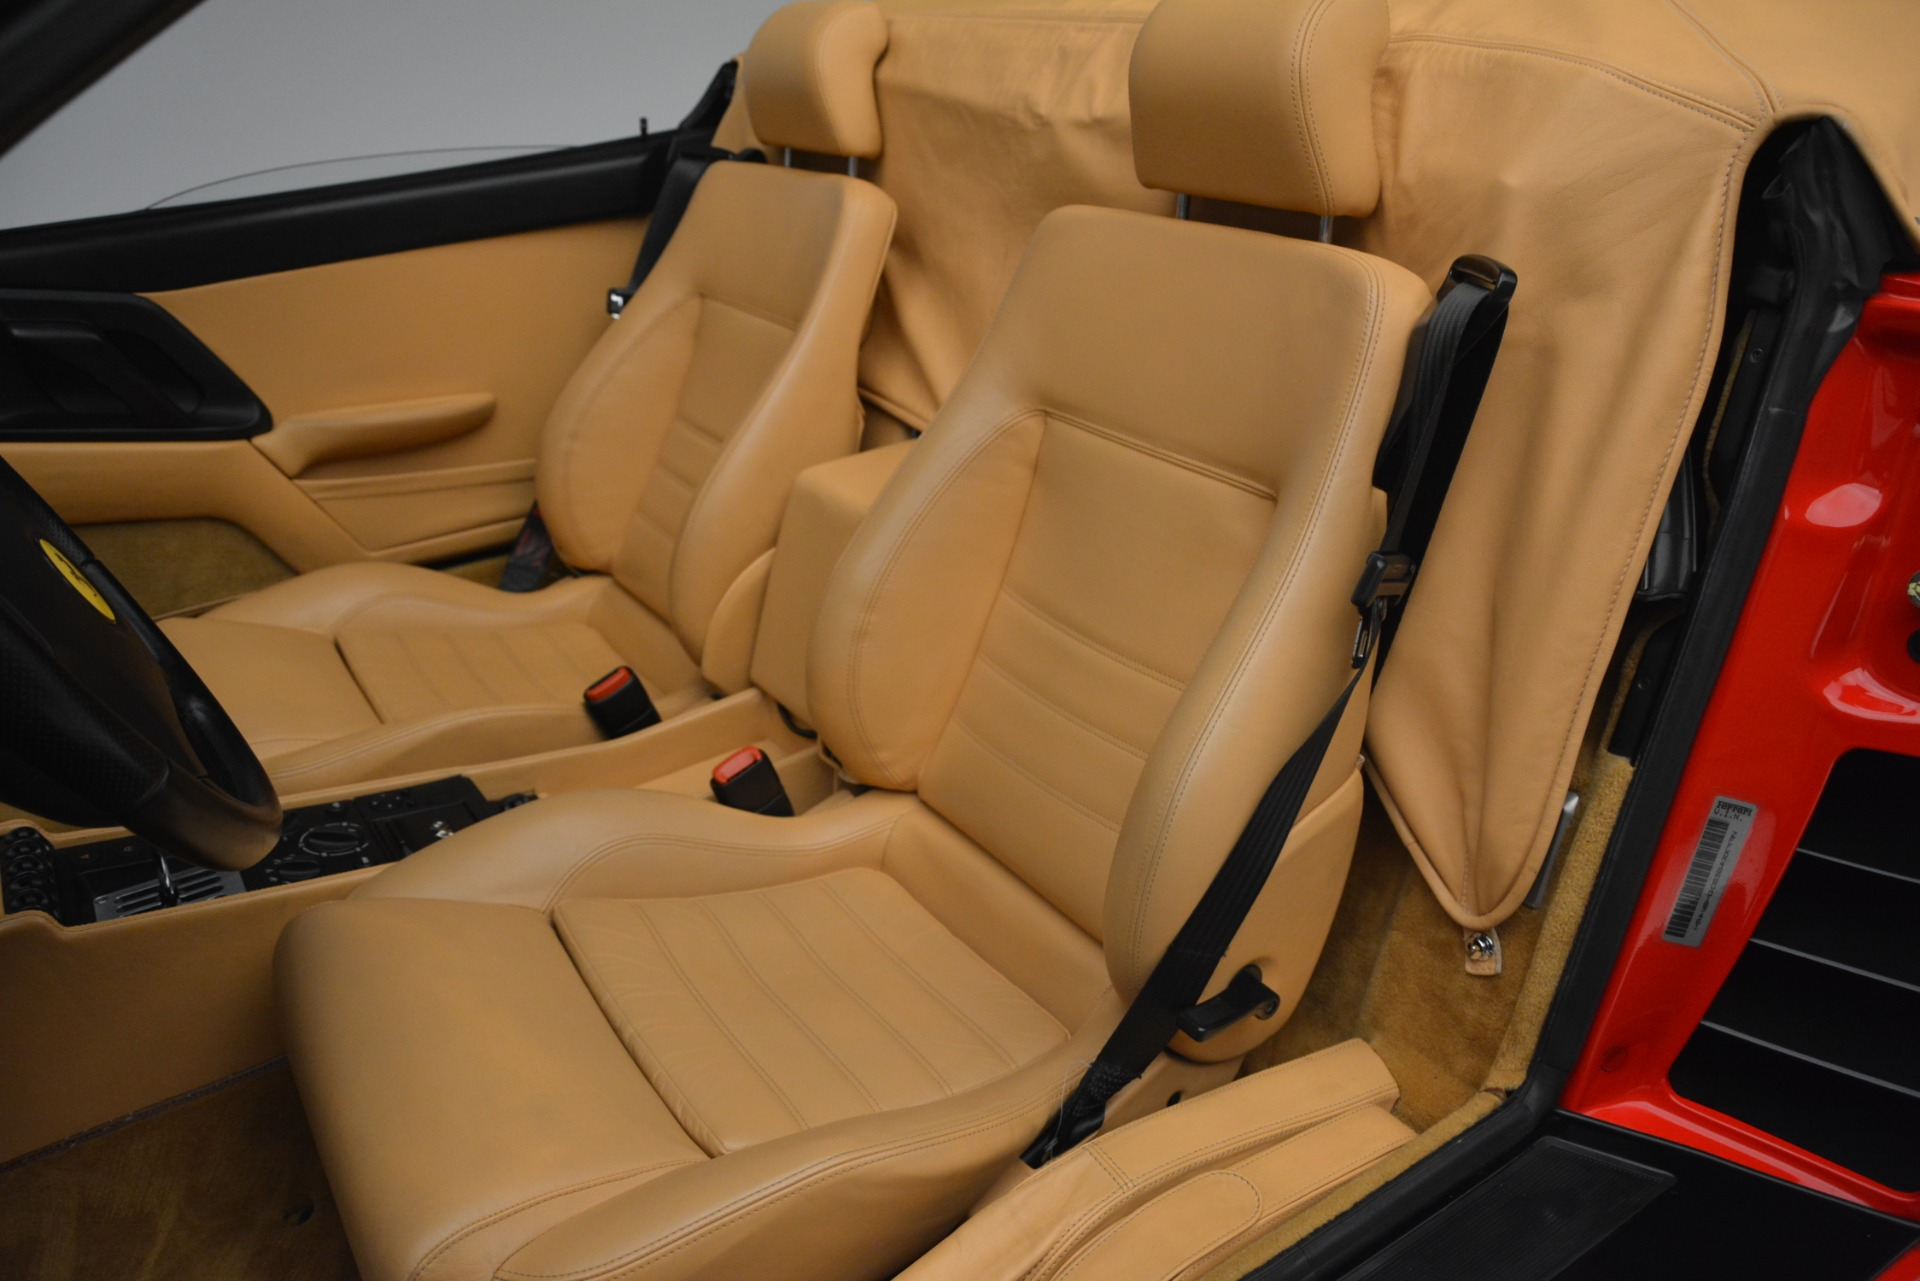 Used 1997 Ferrari 355 Spider 6-Speed Manual For Sale In Greenwich, CT 2735_p30